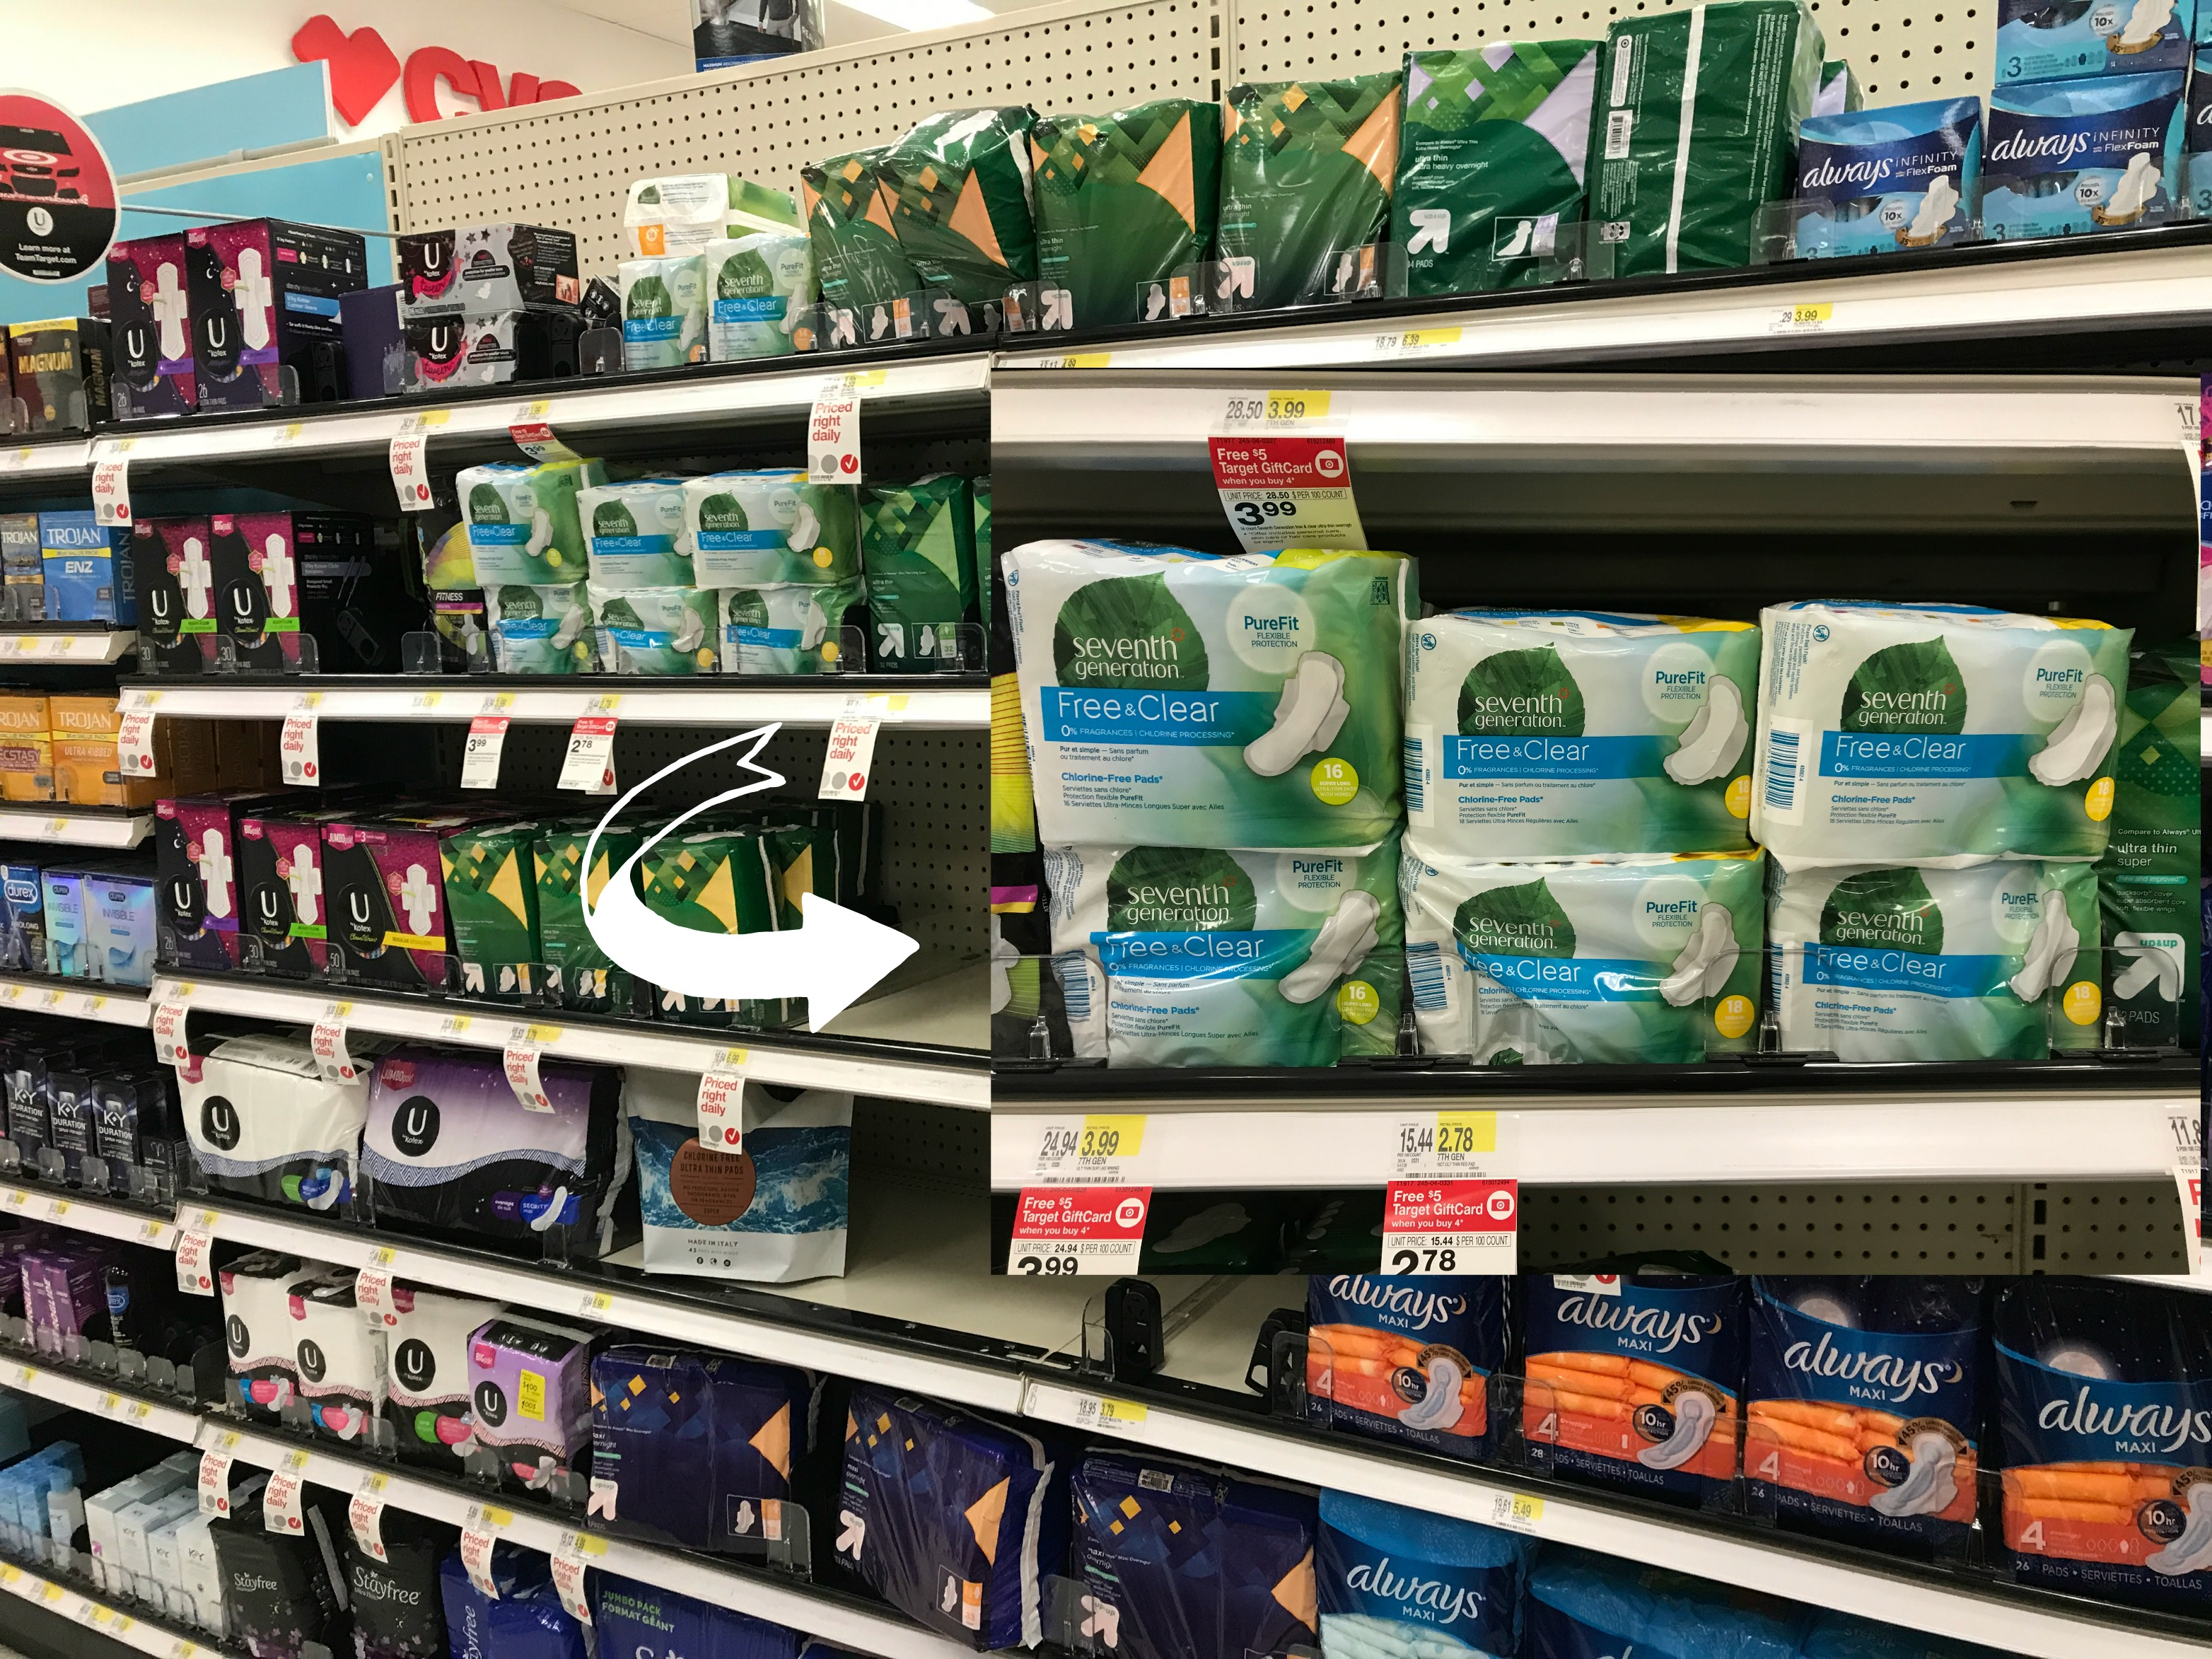 Seventh Generation Feminine Care Products